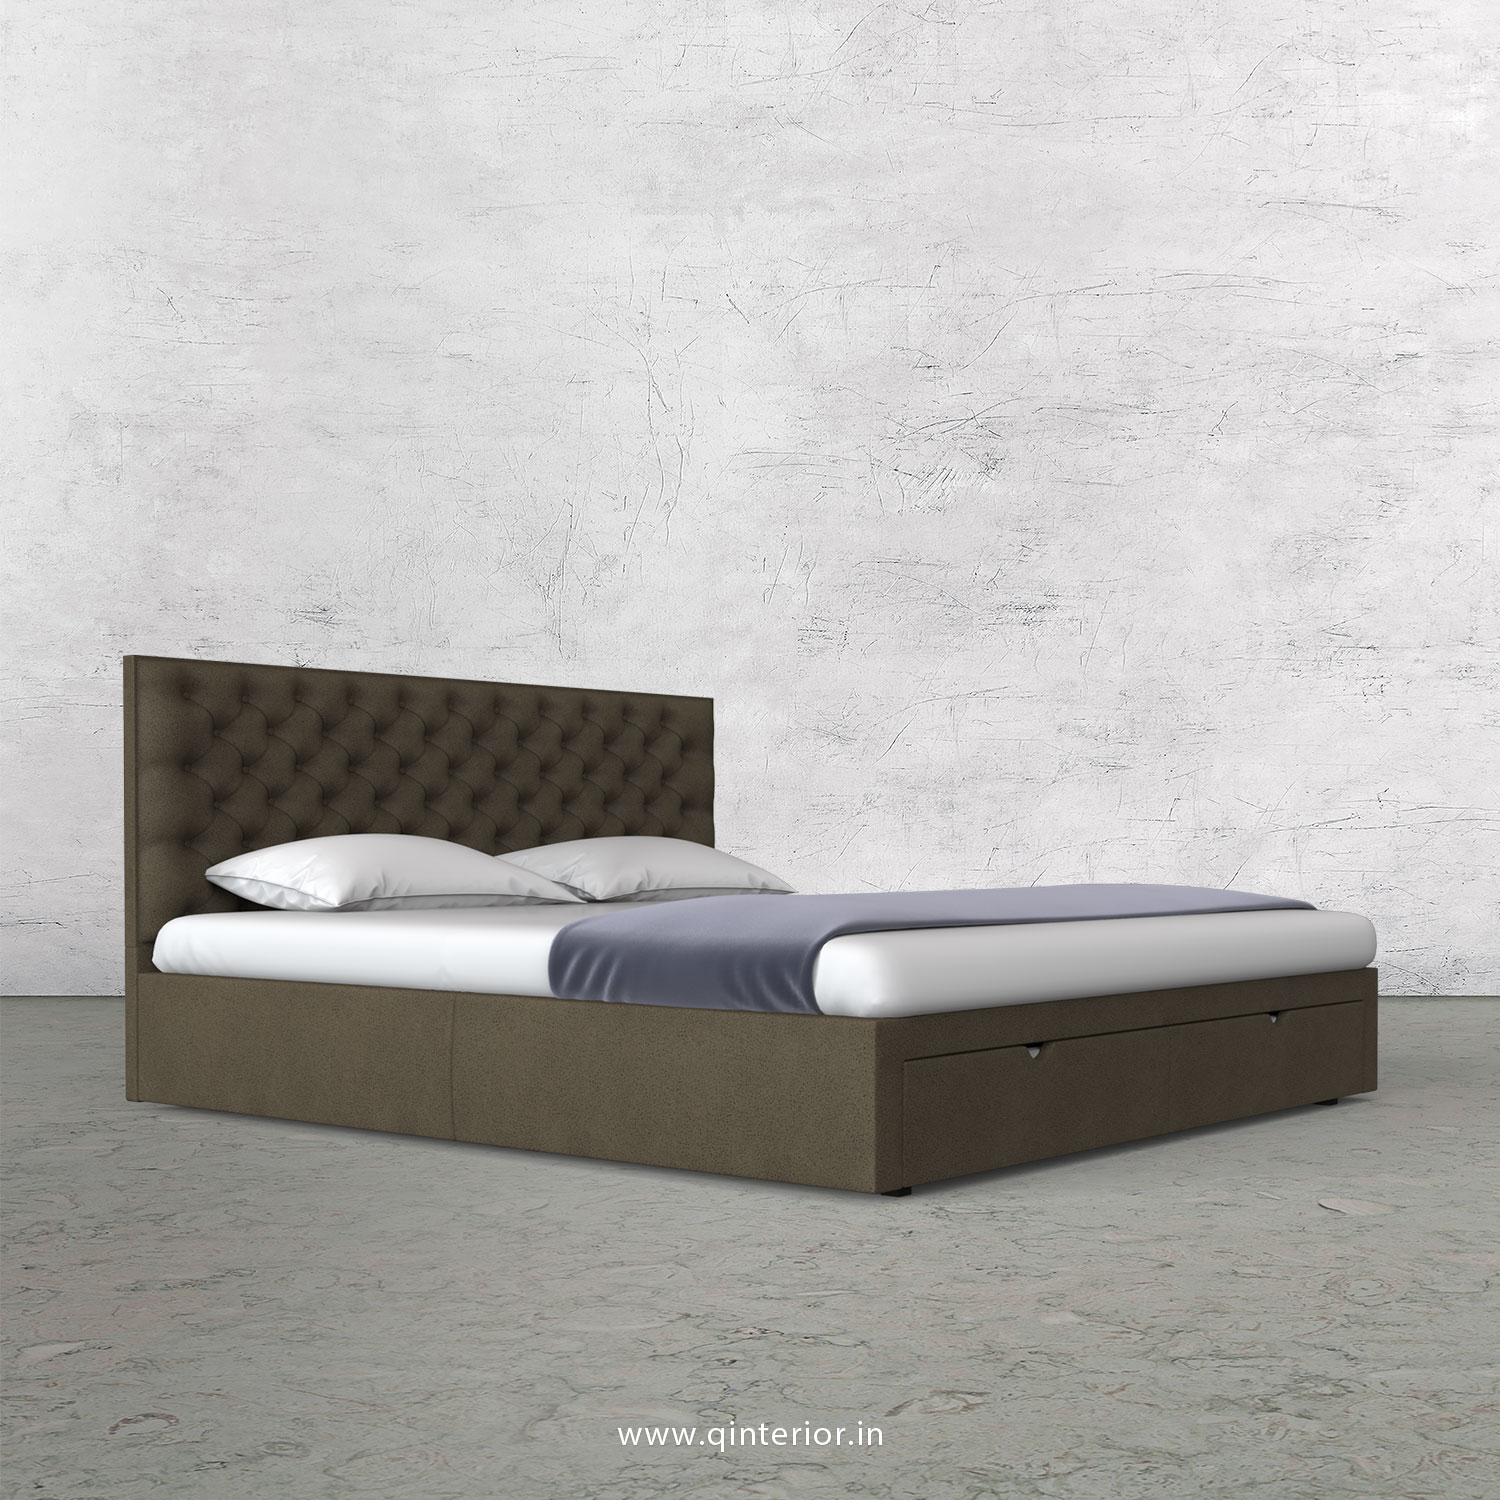 Orion Queen Storage Bed in Fab Leather Fabric - QBD001 FL06